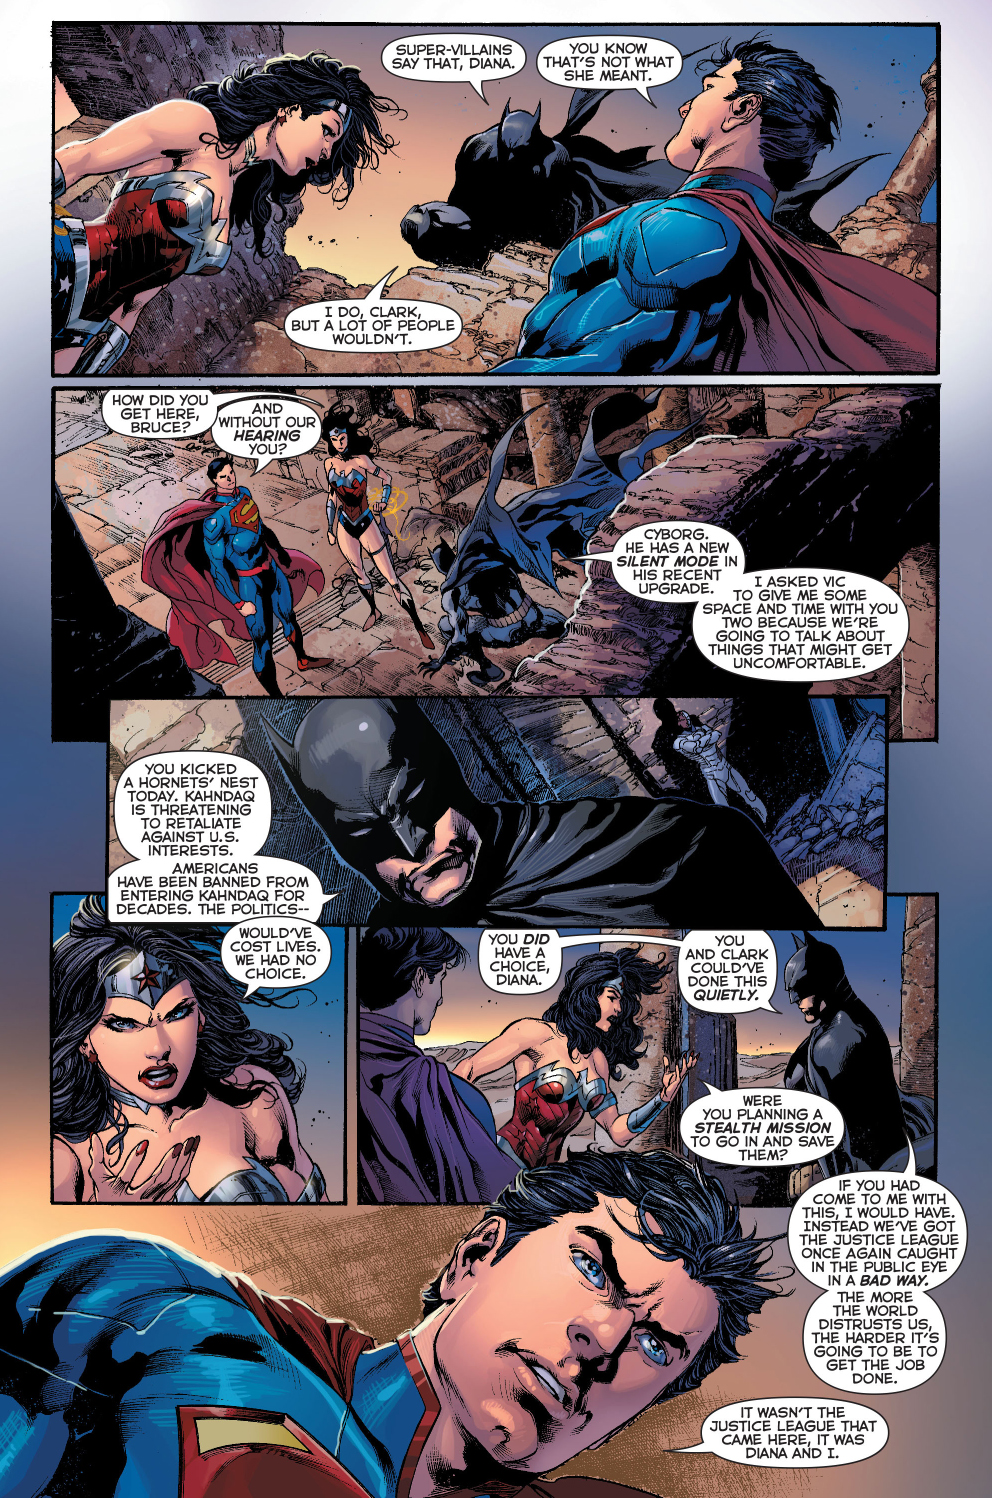 Batman Talks To Superman And Wonder Woman About Their -9780